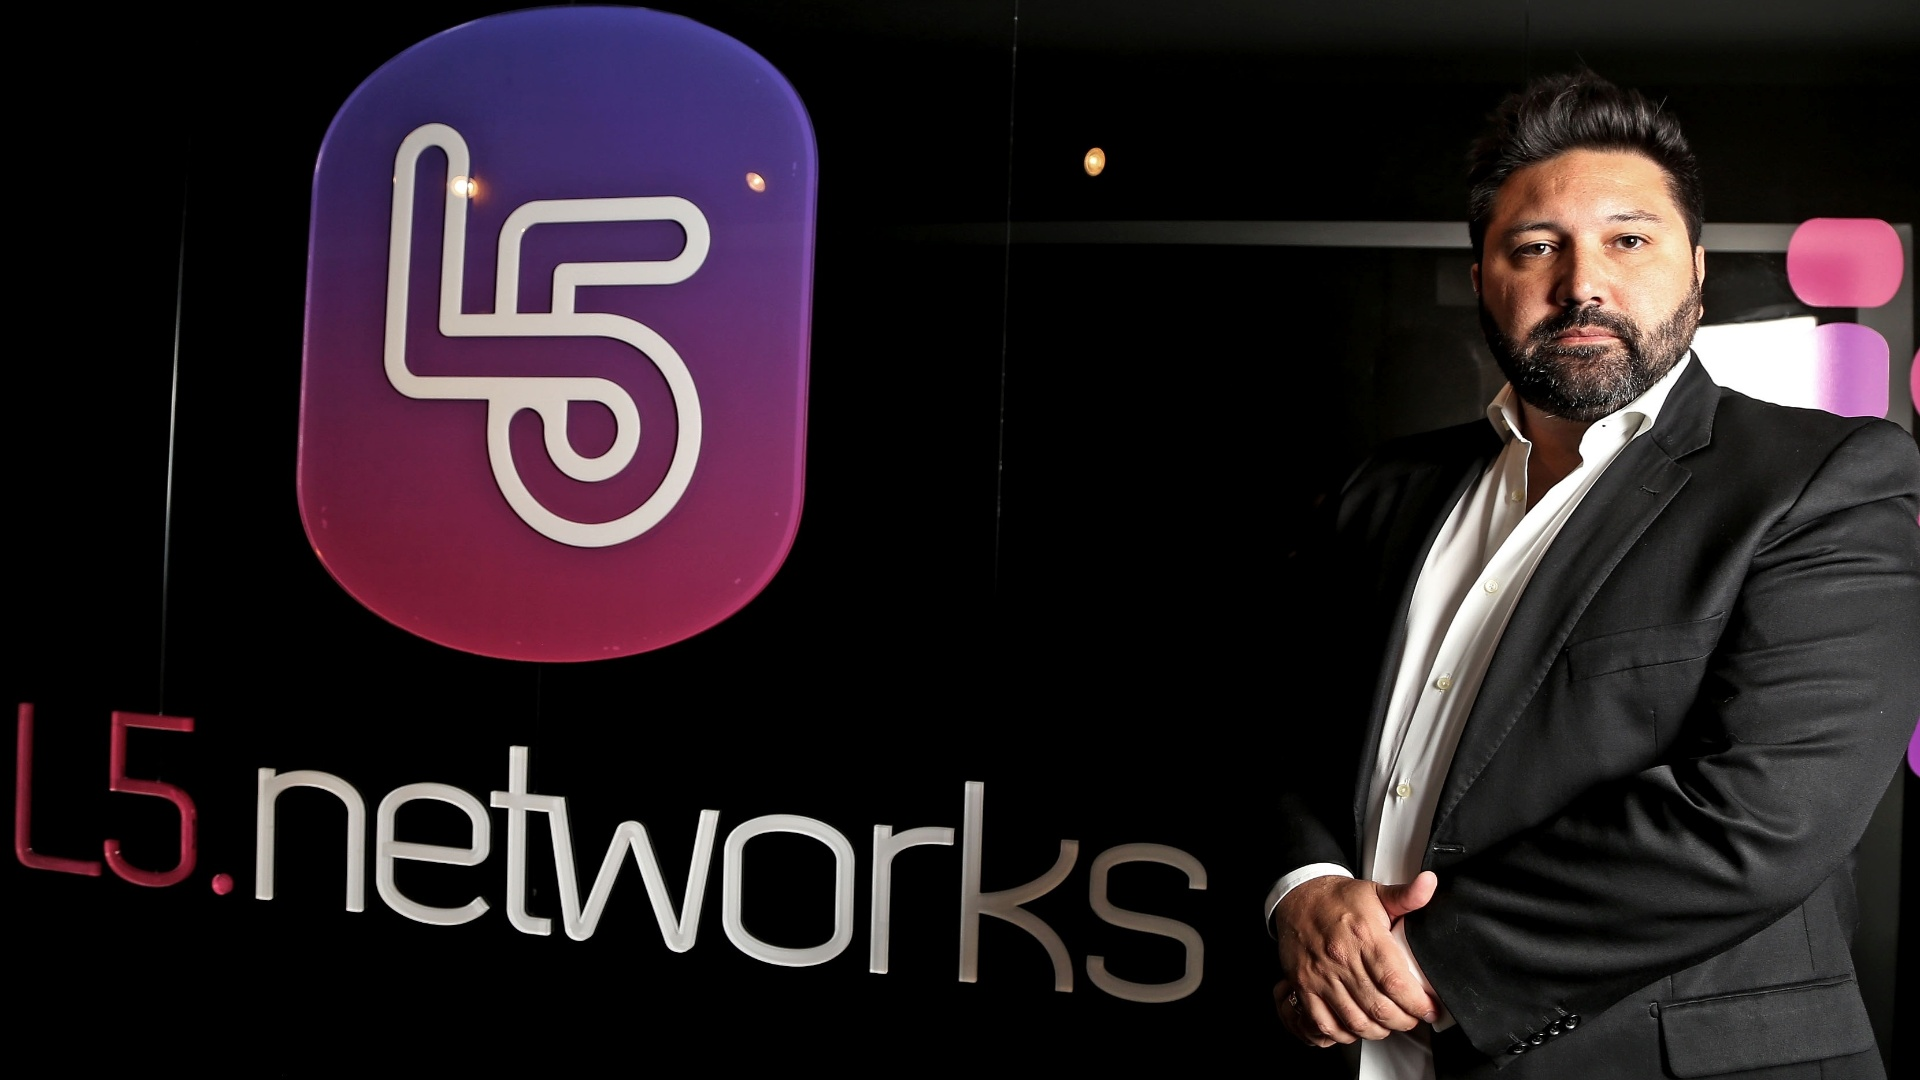 L5 Networks